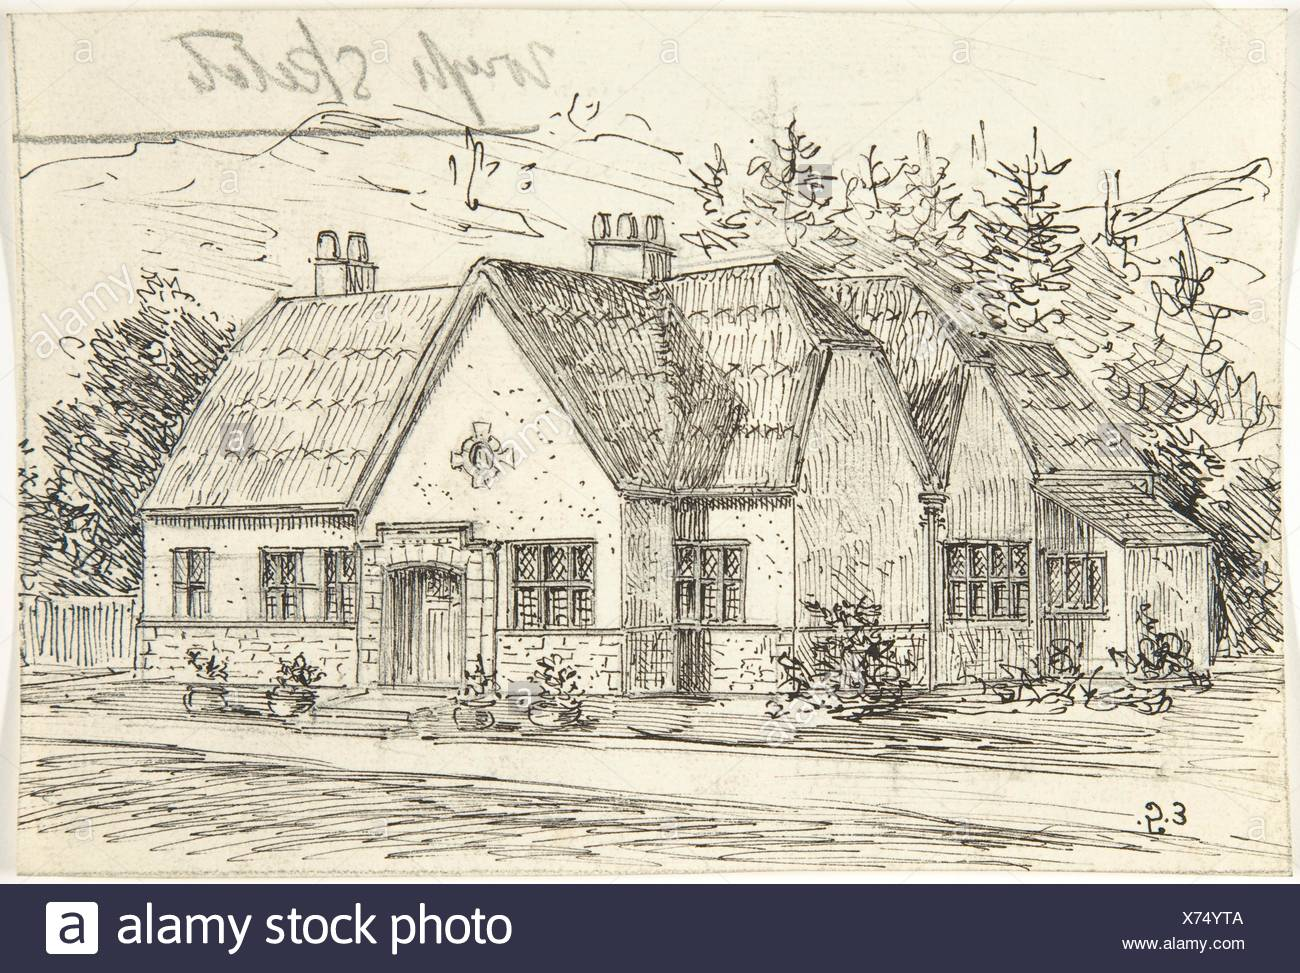 Thatched Roof Stone Cottage. Artist: Ernest Geldart (British, London 1848-1929); Date: late 19th-early 20th century; Medium: Pen and black ink over - Stock Image